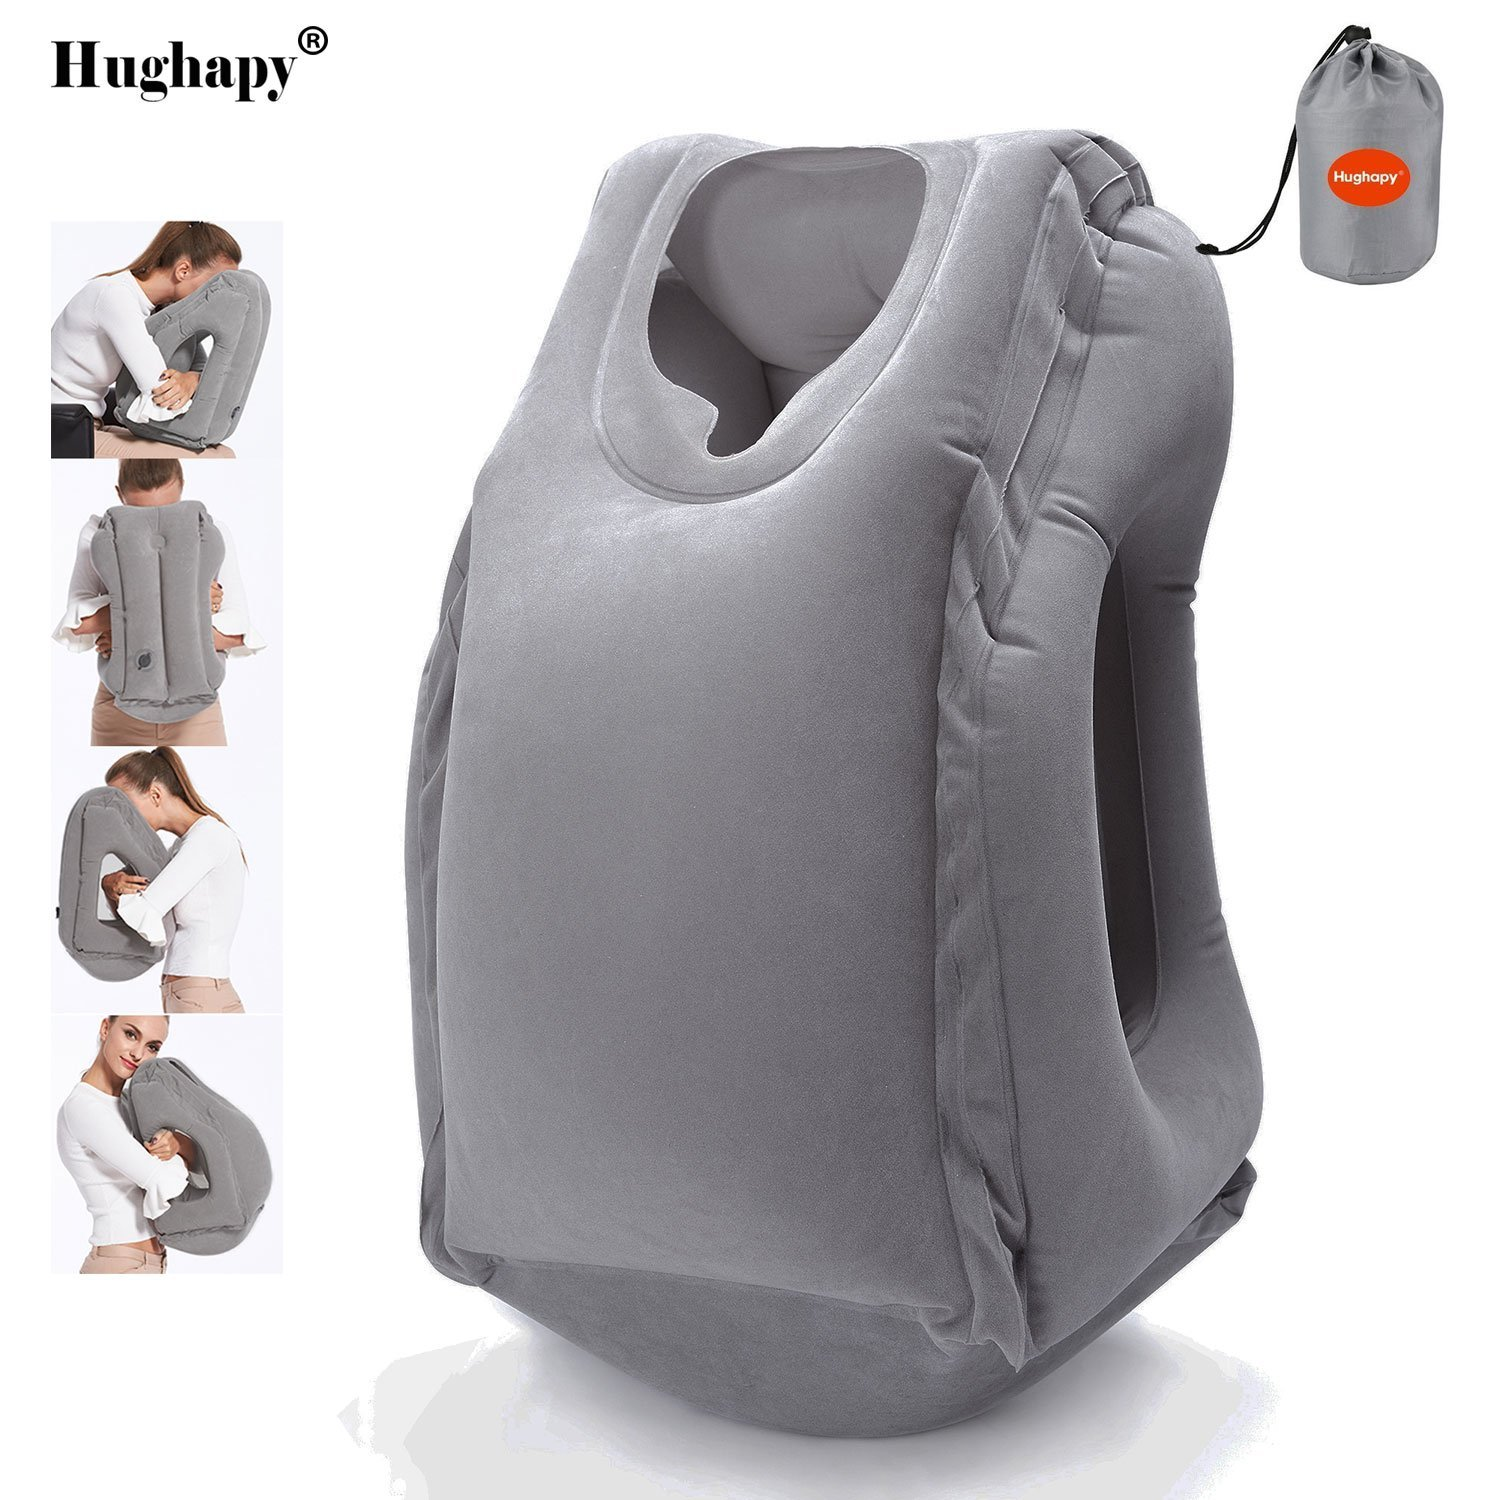 Hughapy Travel Pillow Inflatable Pillows Air Soft Cushion Trip Portable Multifunctional Pillow Nap Time Lie Prone on the Pillow (11.8